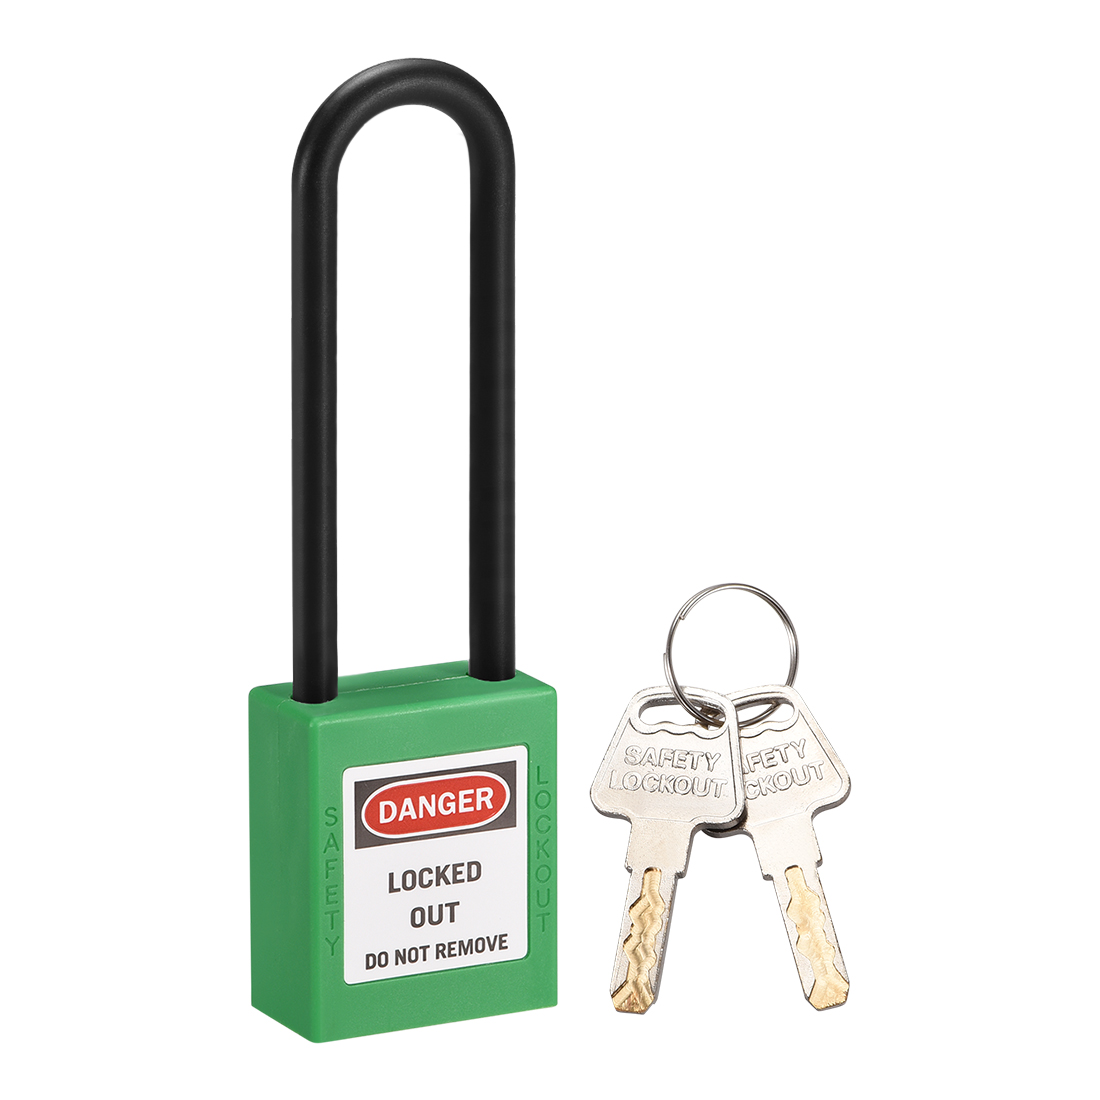 Lockout Tagout Locks 3 Inch Shackle Key Different Safety Padlock Light Green